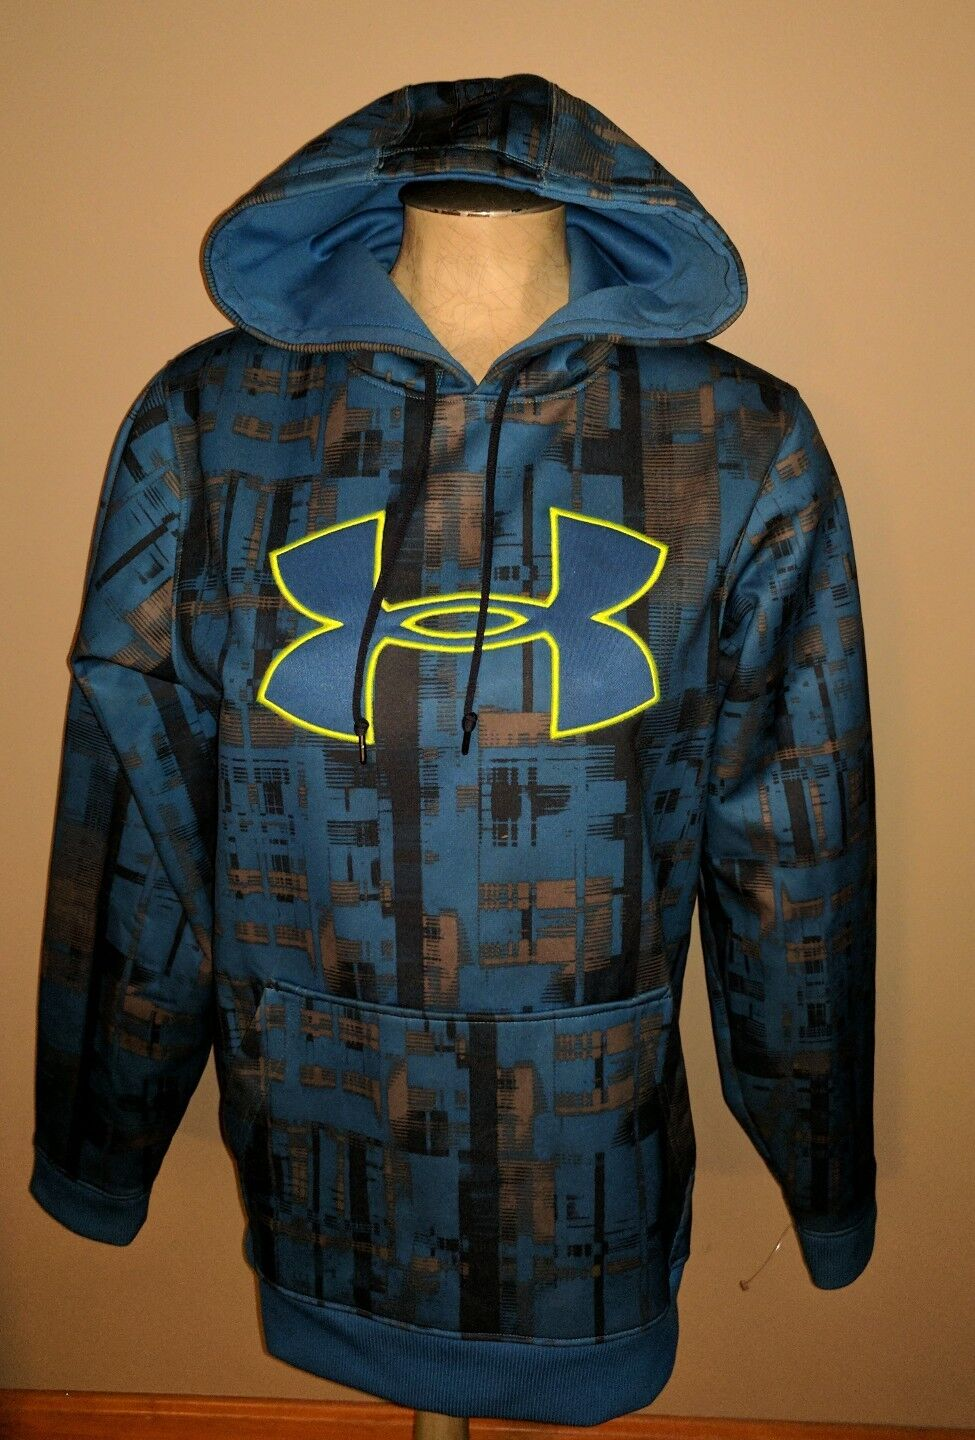 UNDER ARMOUR  Herren HOODIE SM S Blau GEOMETRIC DESIGN NEON WORN ONCE